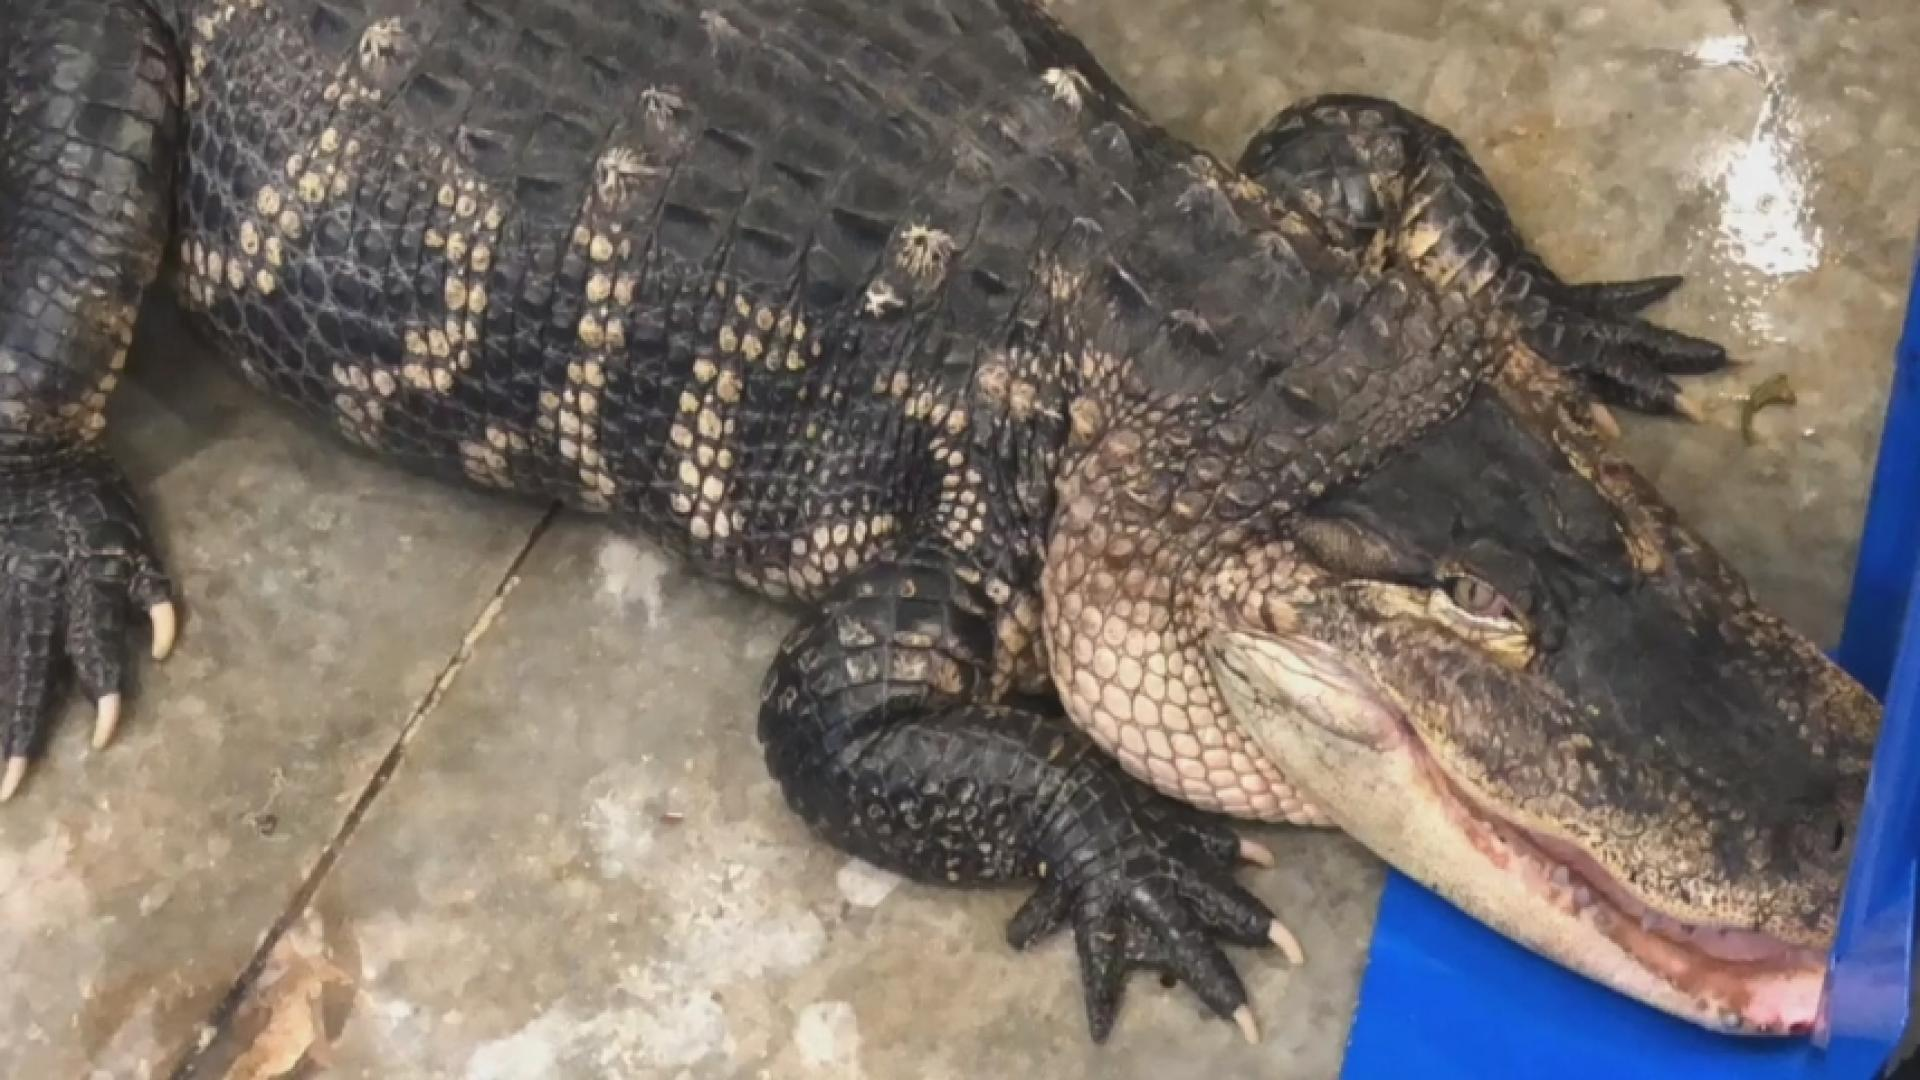 Katfish the Gator Gets New Home